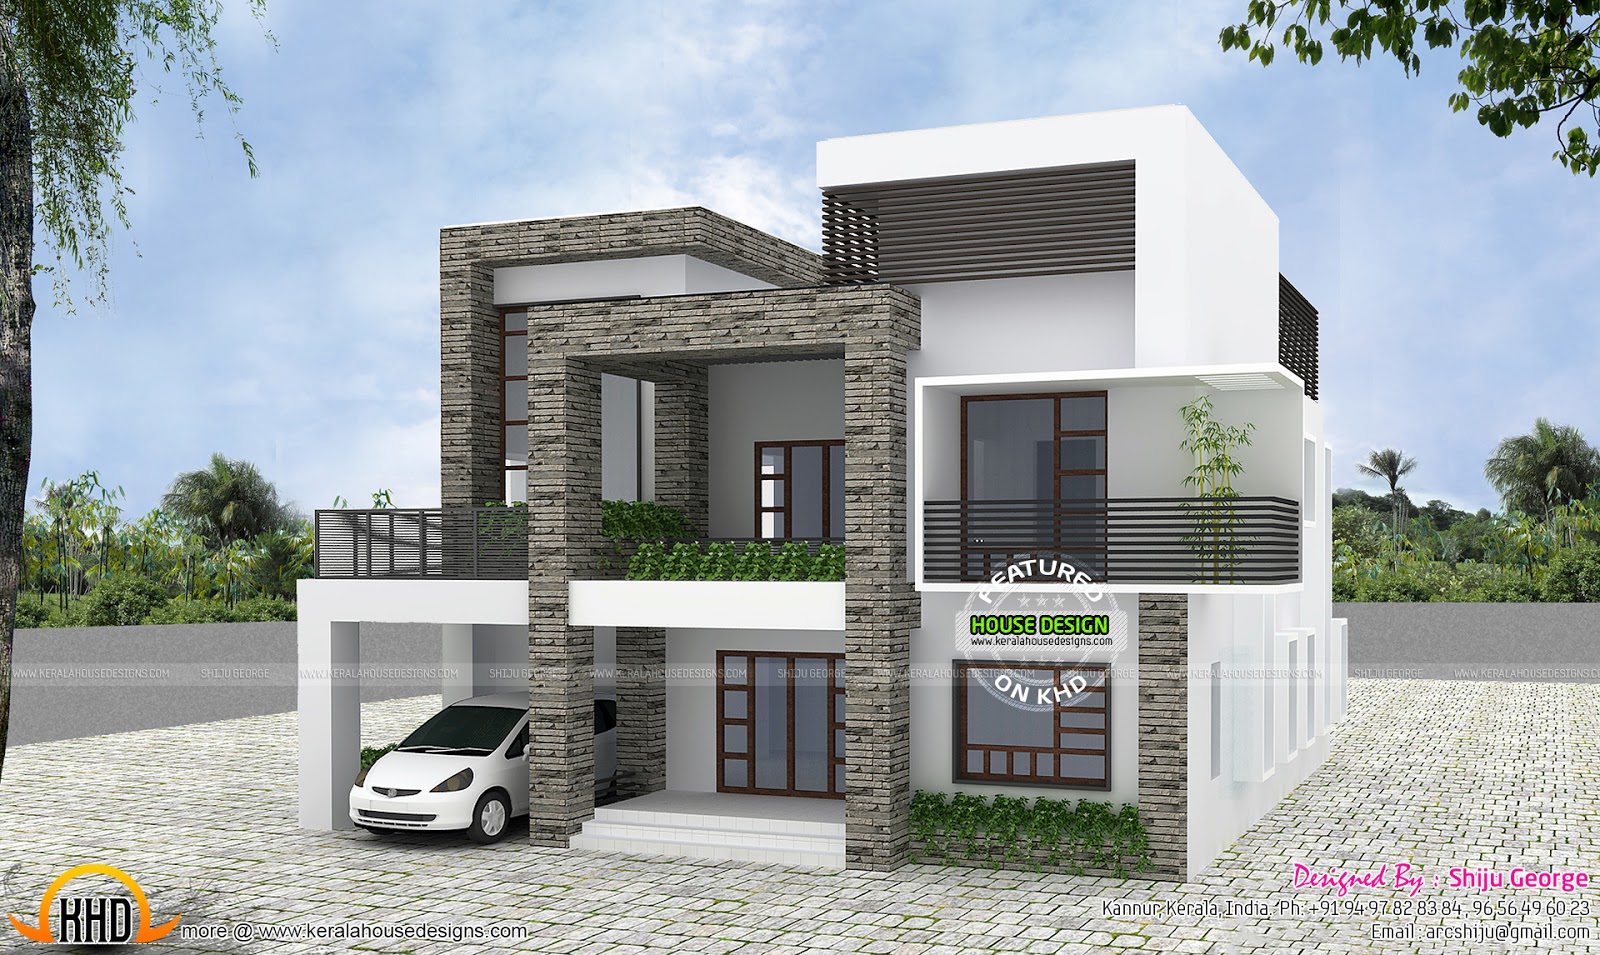 Contemporary house by shiju george home design simple for Different home designs